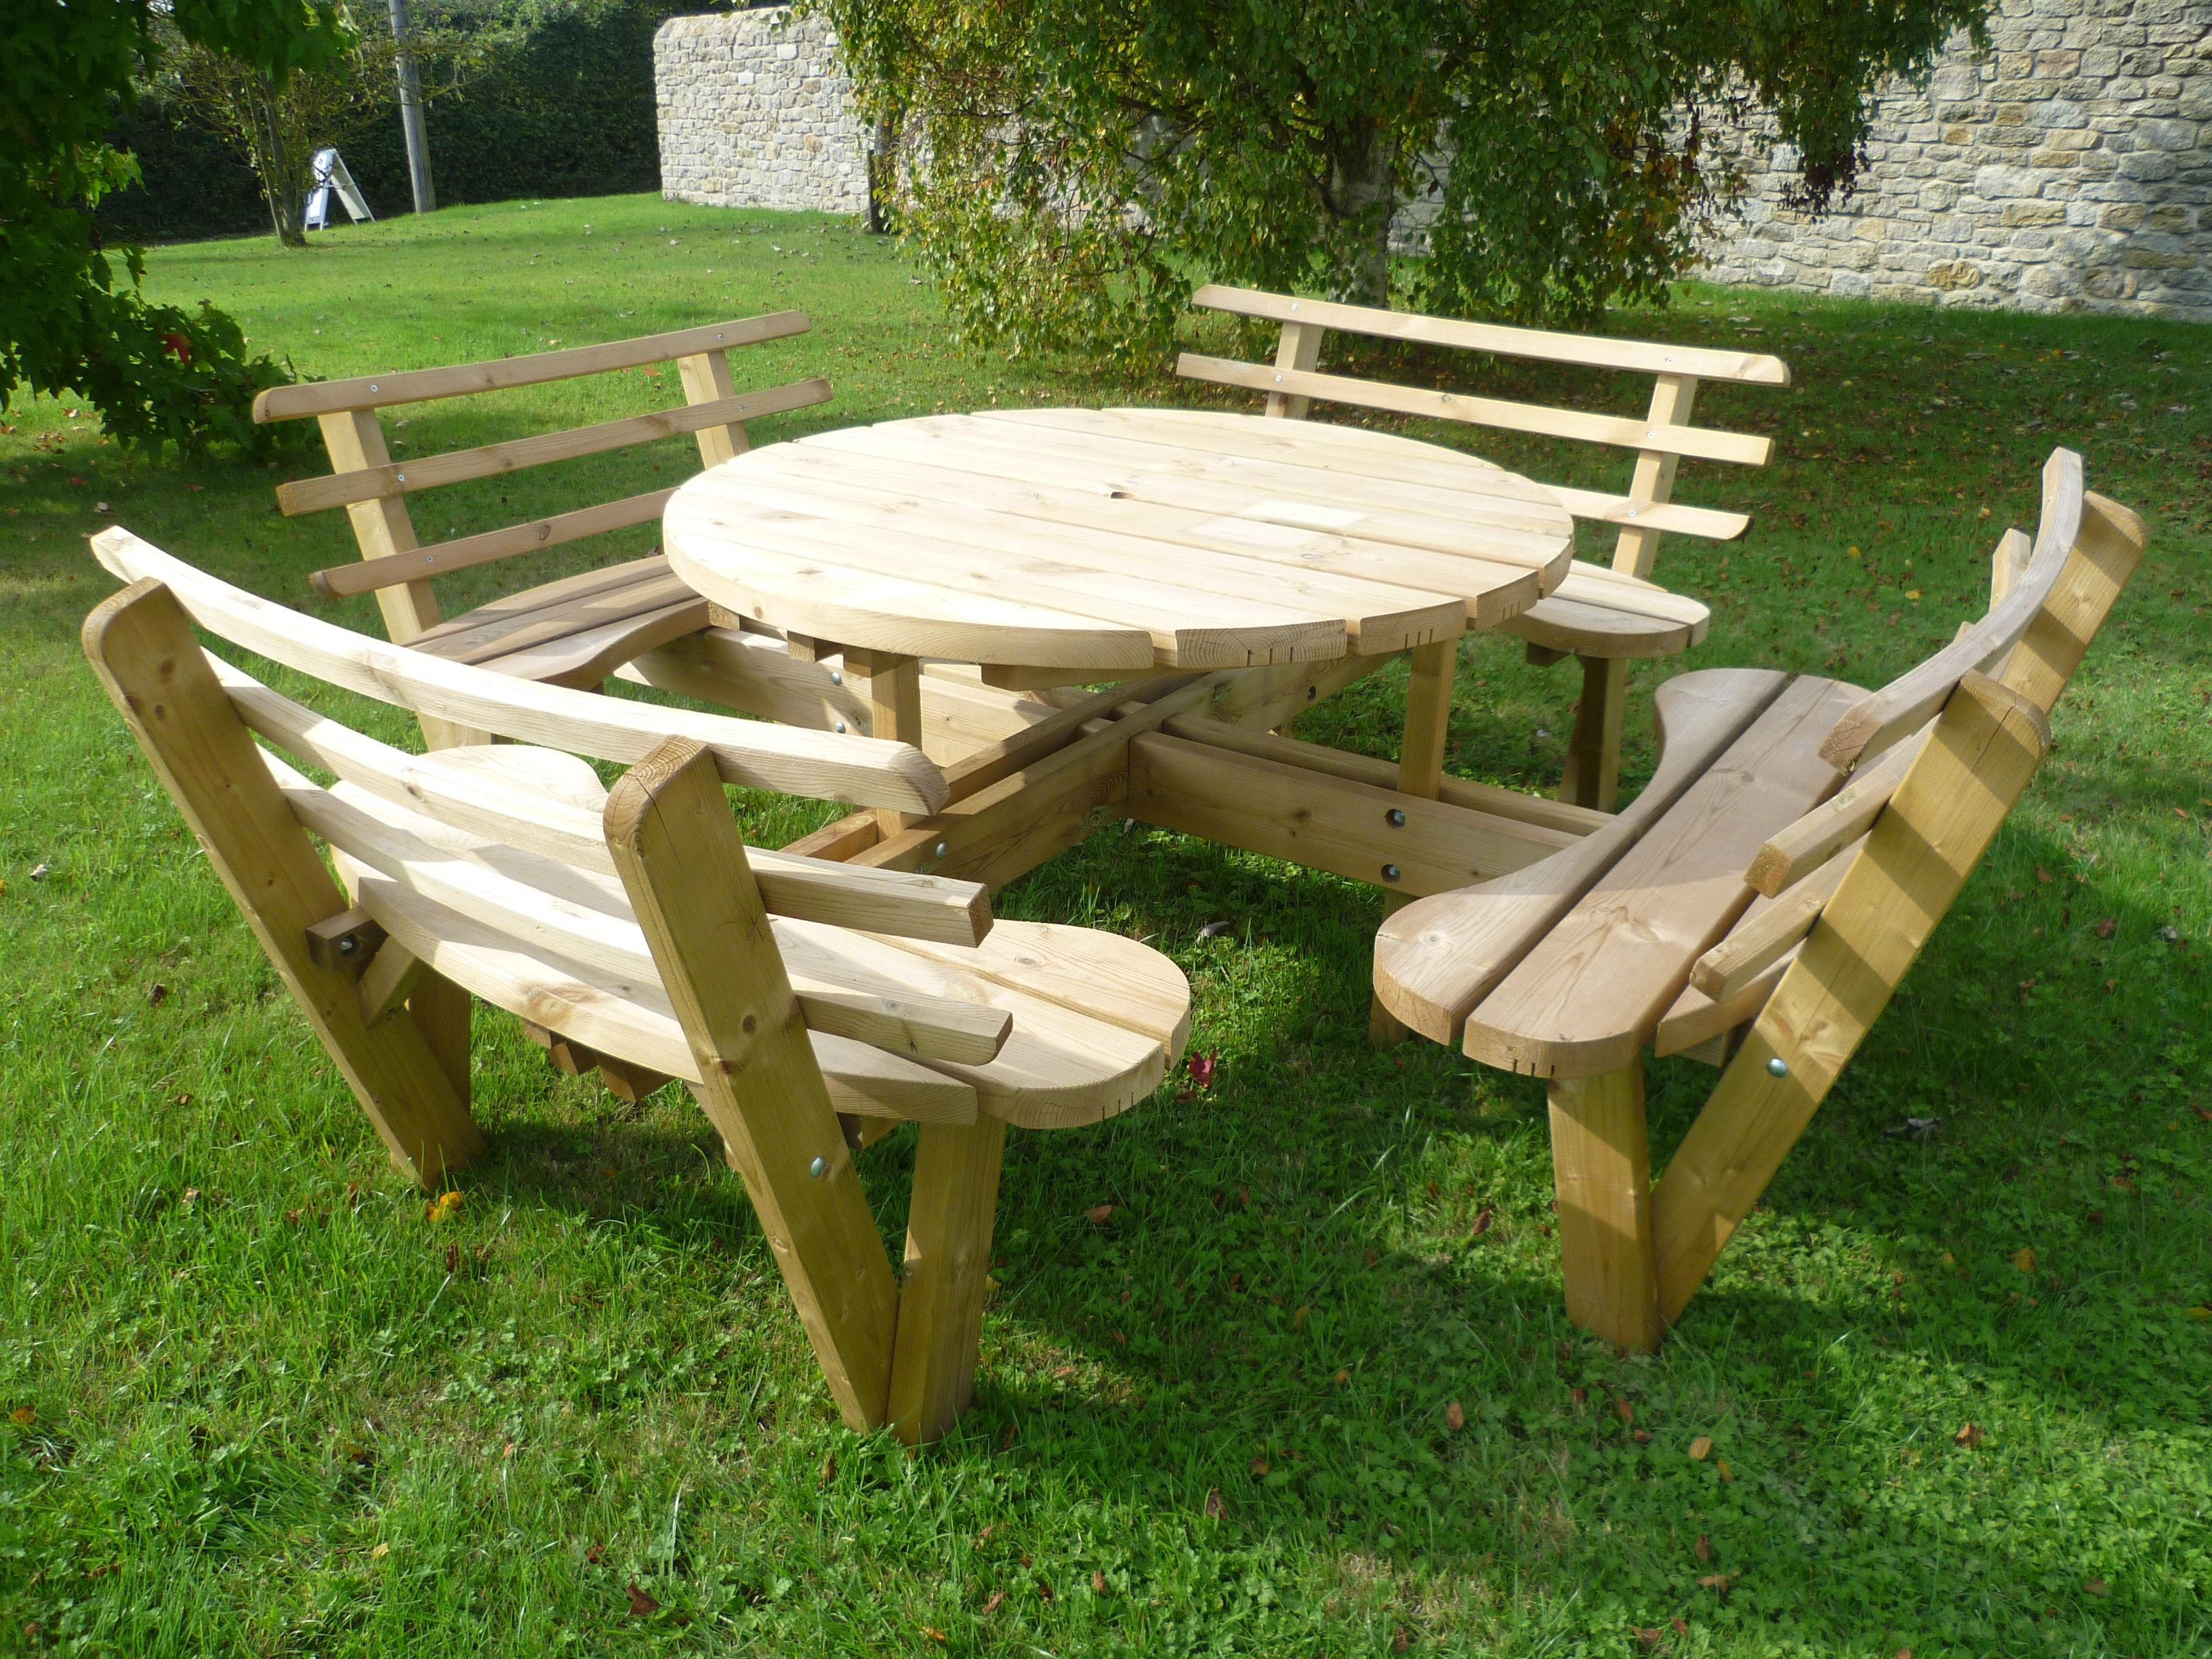 Round Wooden Picnic Table With Seat Backs Wooden Picnic Tables Picnic Table Picnic